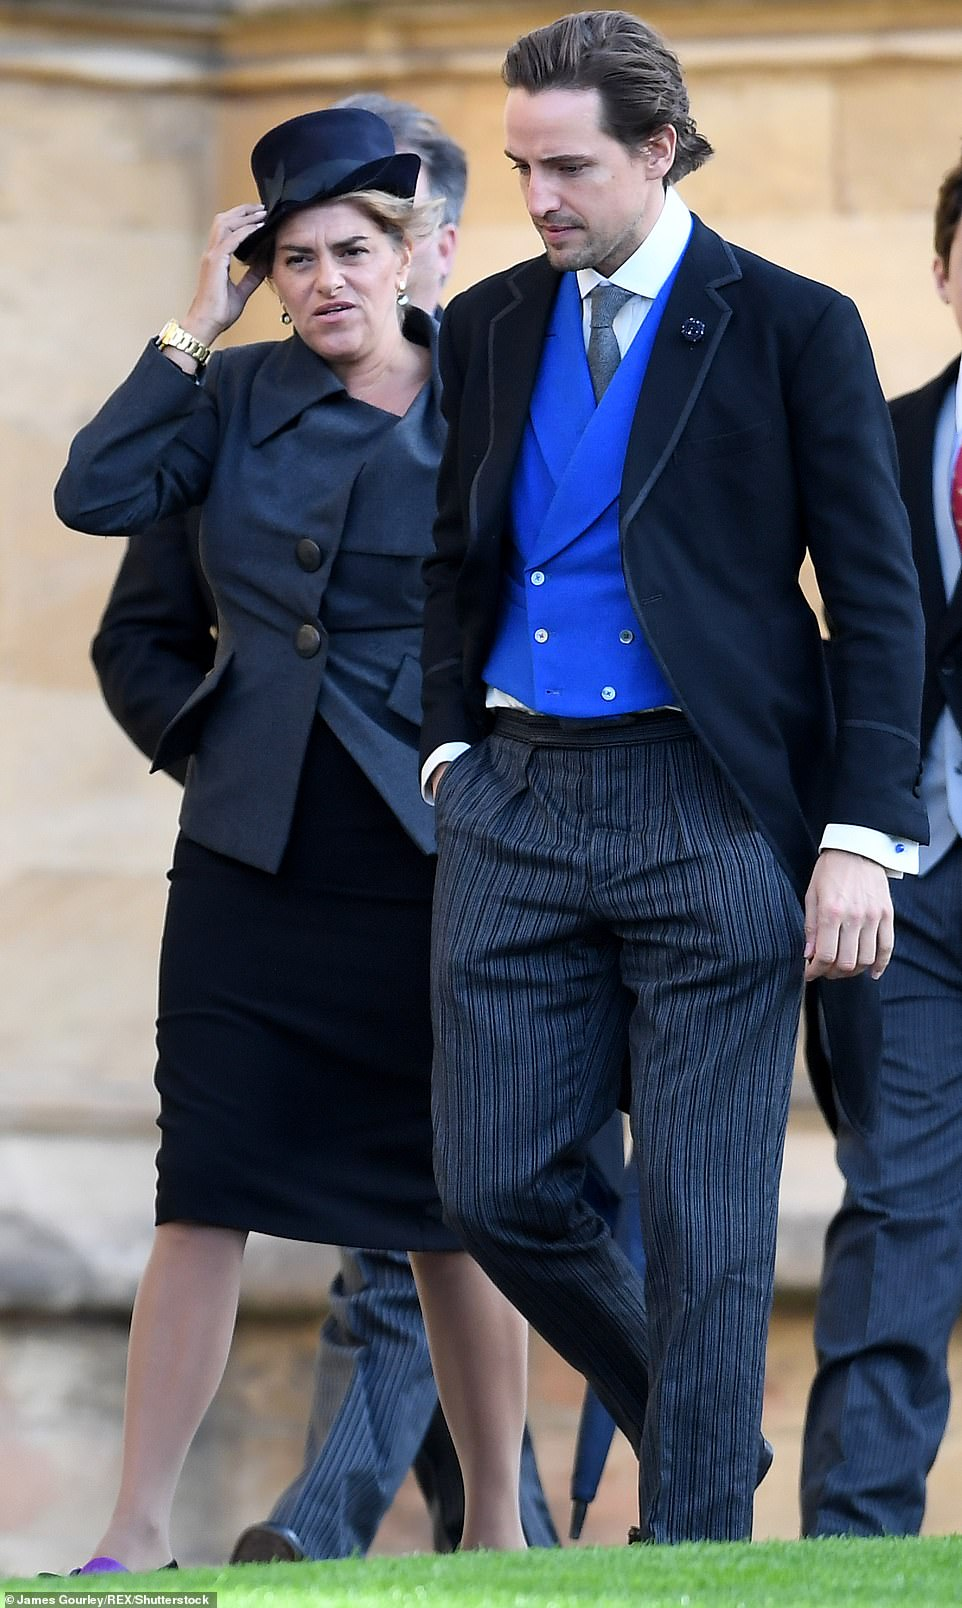 4981114-6268613-Tracey_Emin_arrives_for_the_wedding_of_Eugenie_and_Jack_at_Winds-m-24_1539334664629